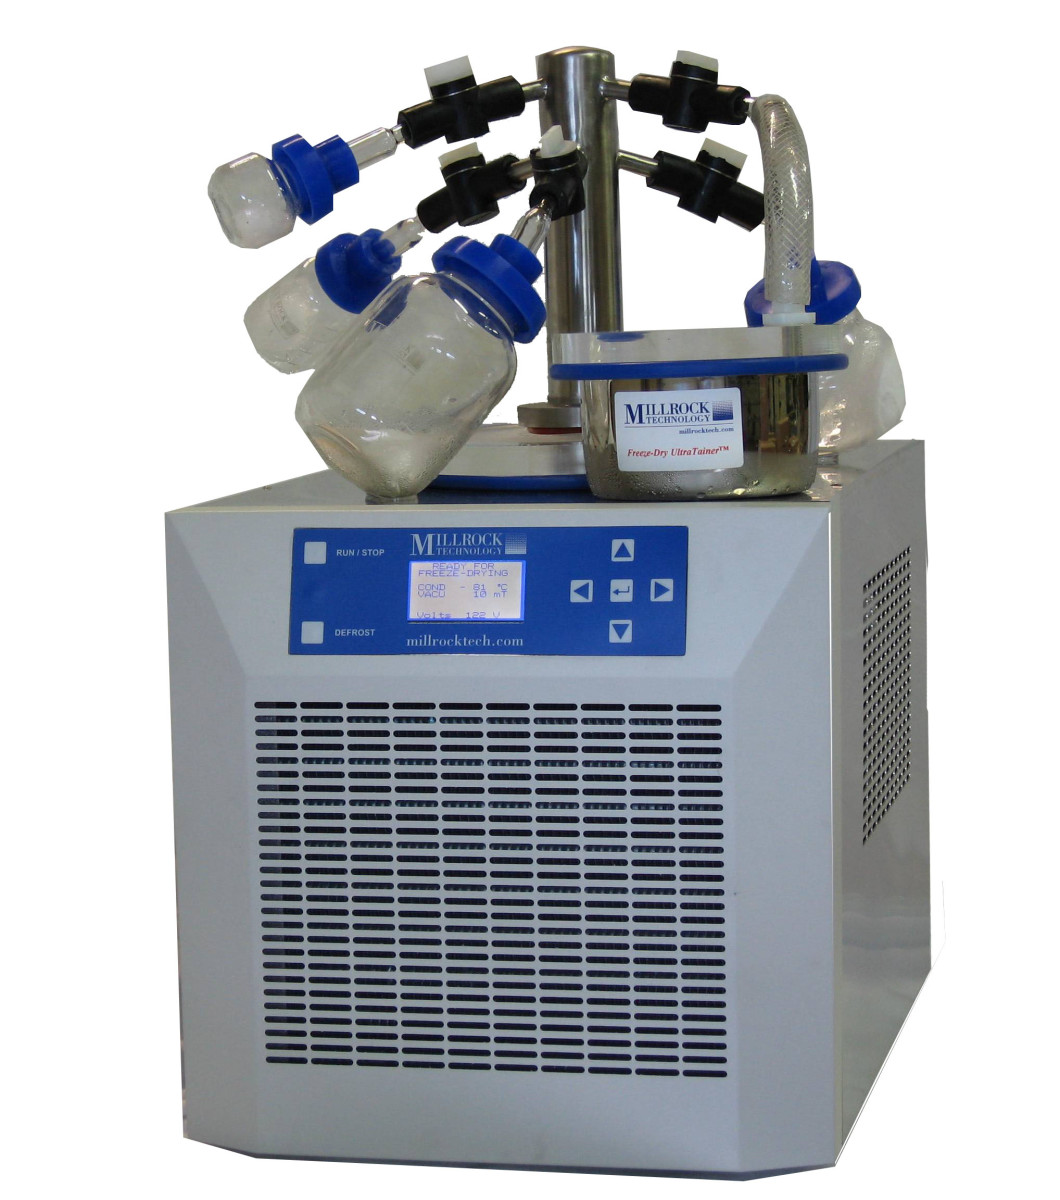 This particular model is known as a bench-top manifold freeze drier.